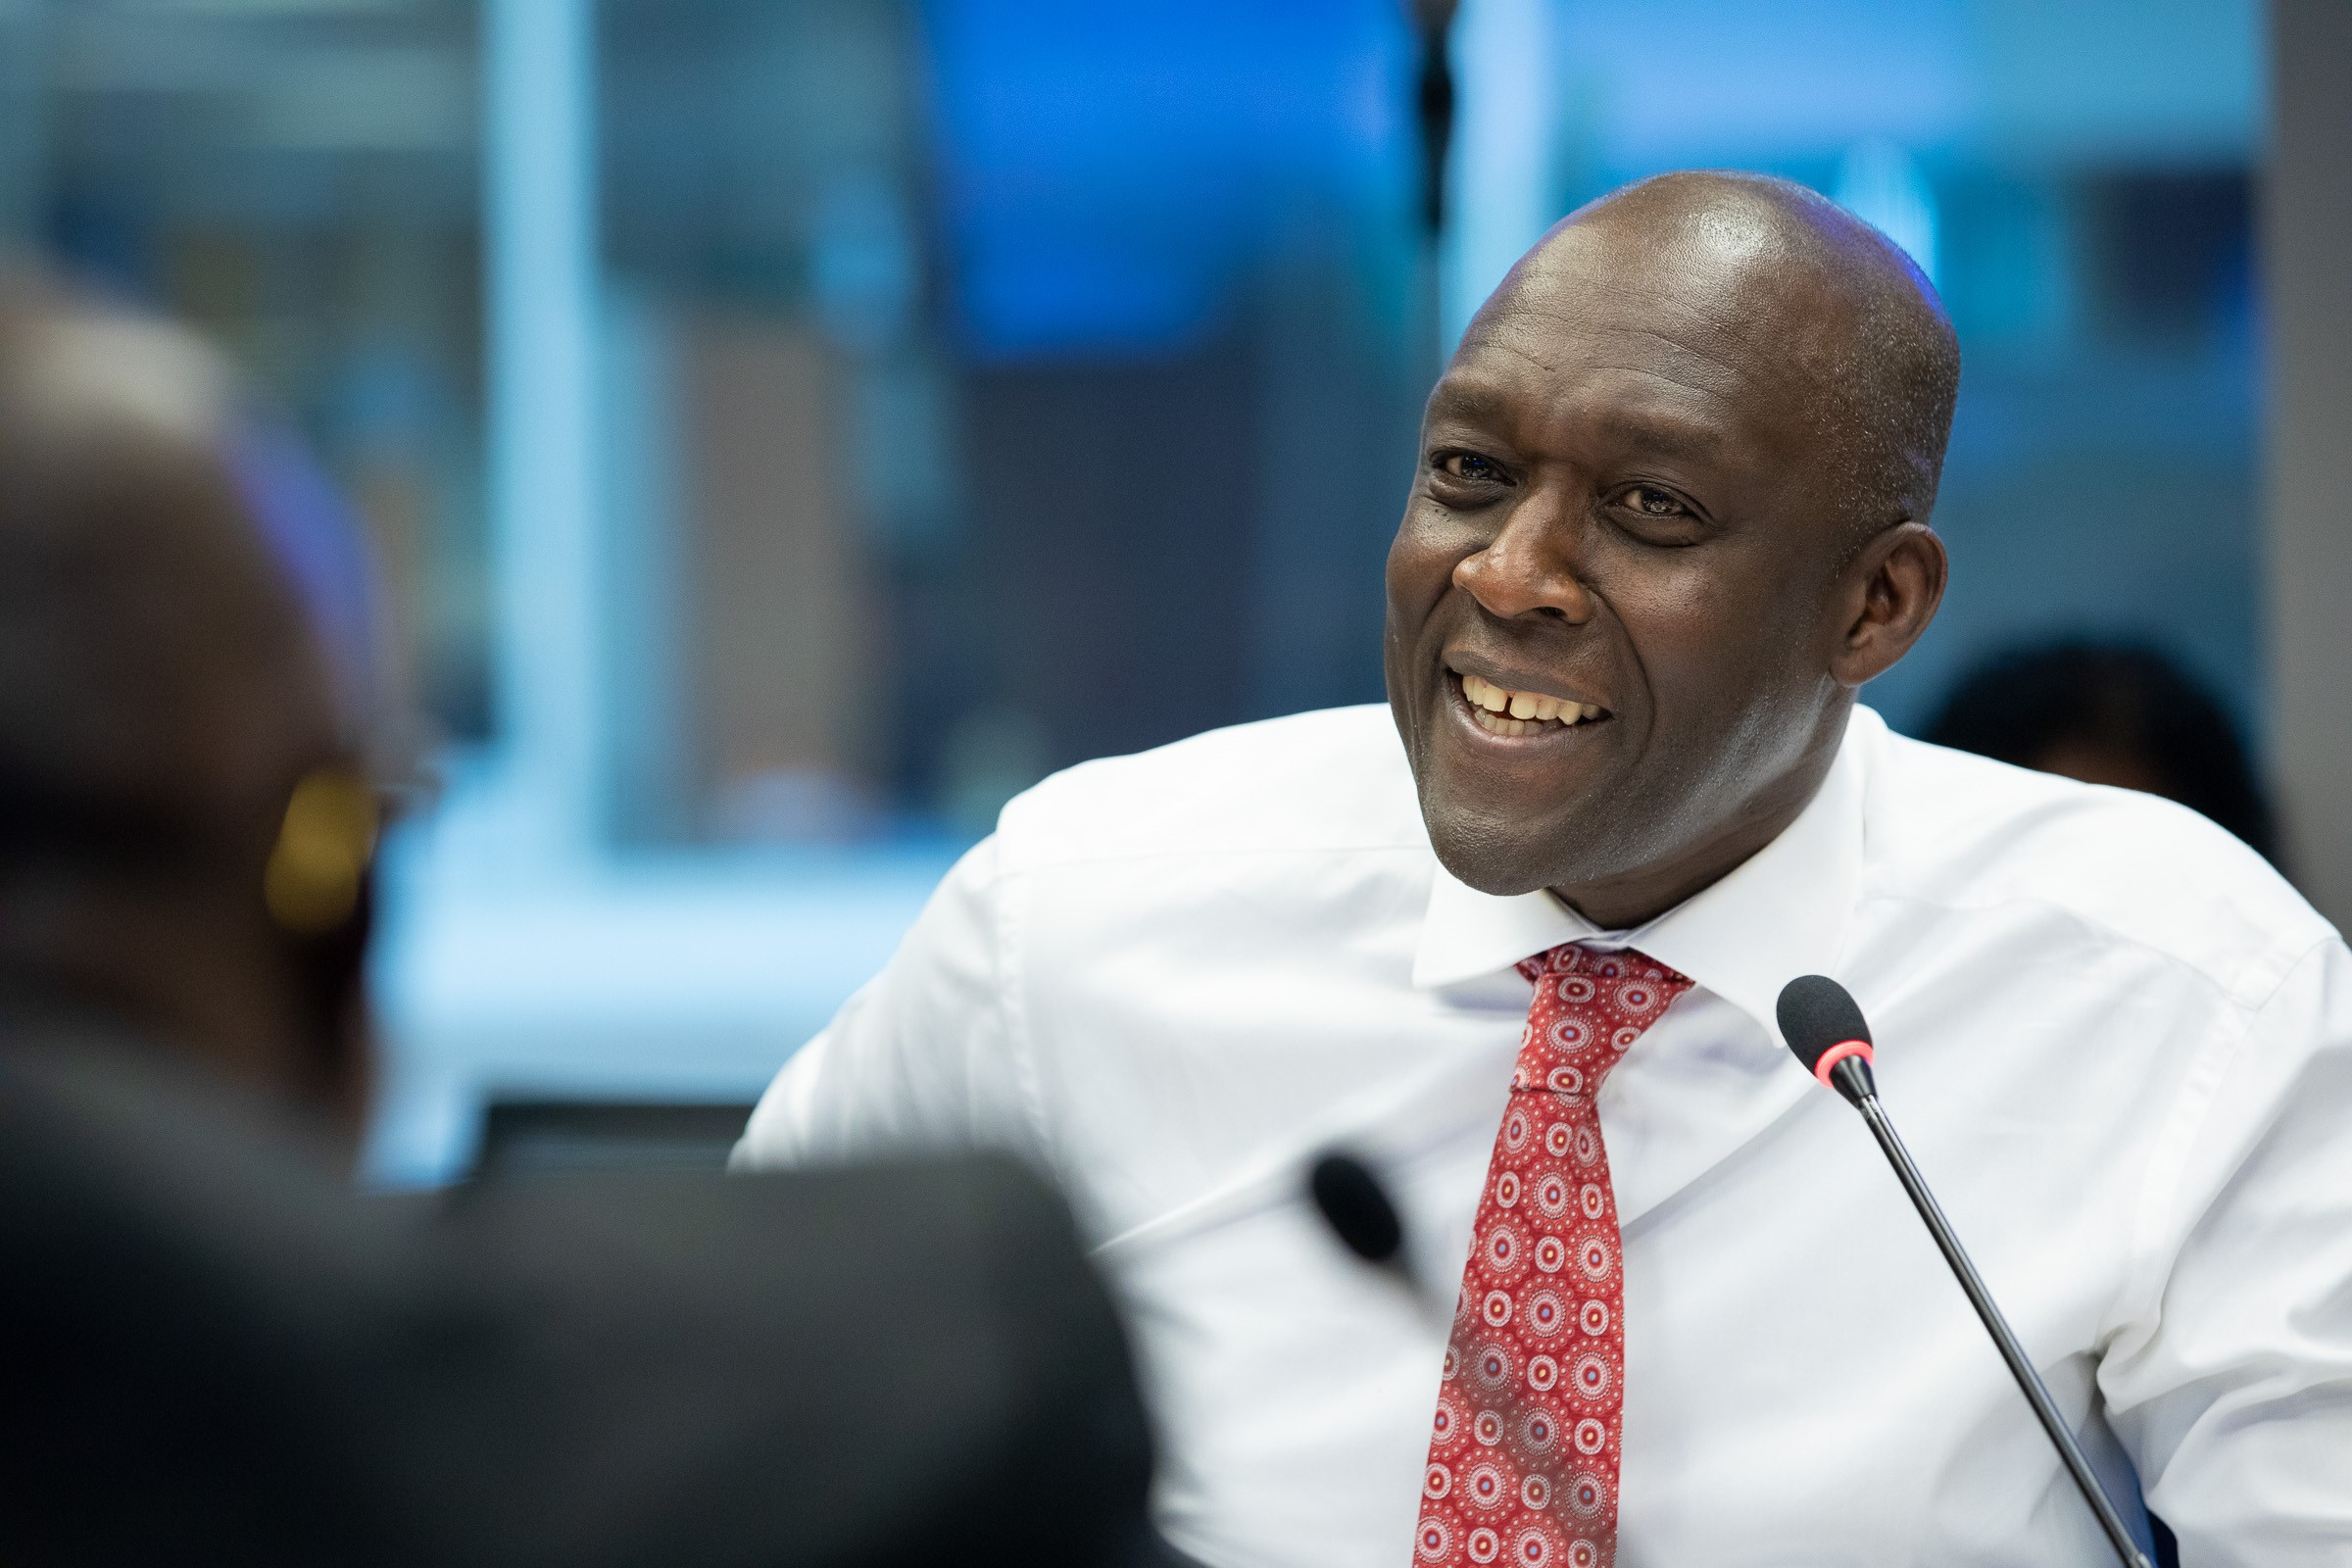 Makhtar Diop Takes Up Role as Vice President for Infrastructure